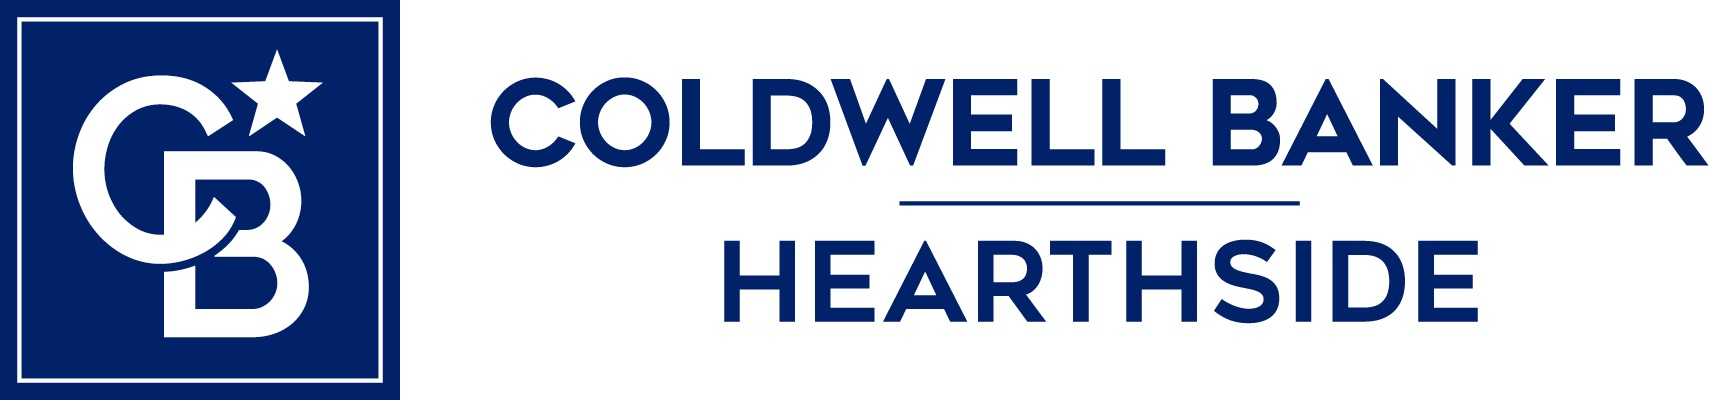 Nancy Schafer - Coldwell Banker Hearthside Logo